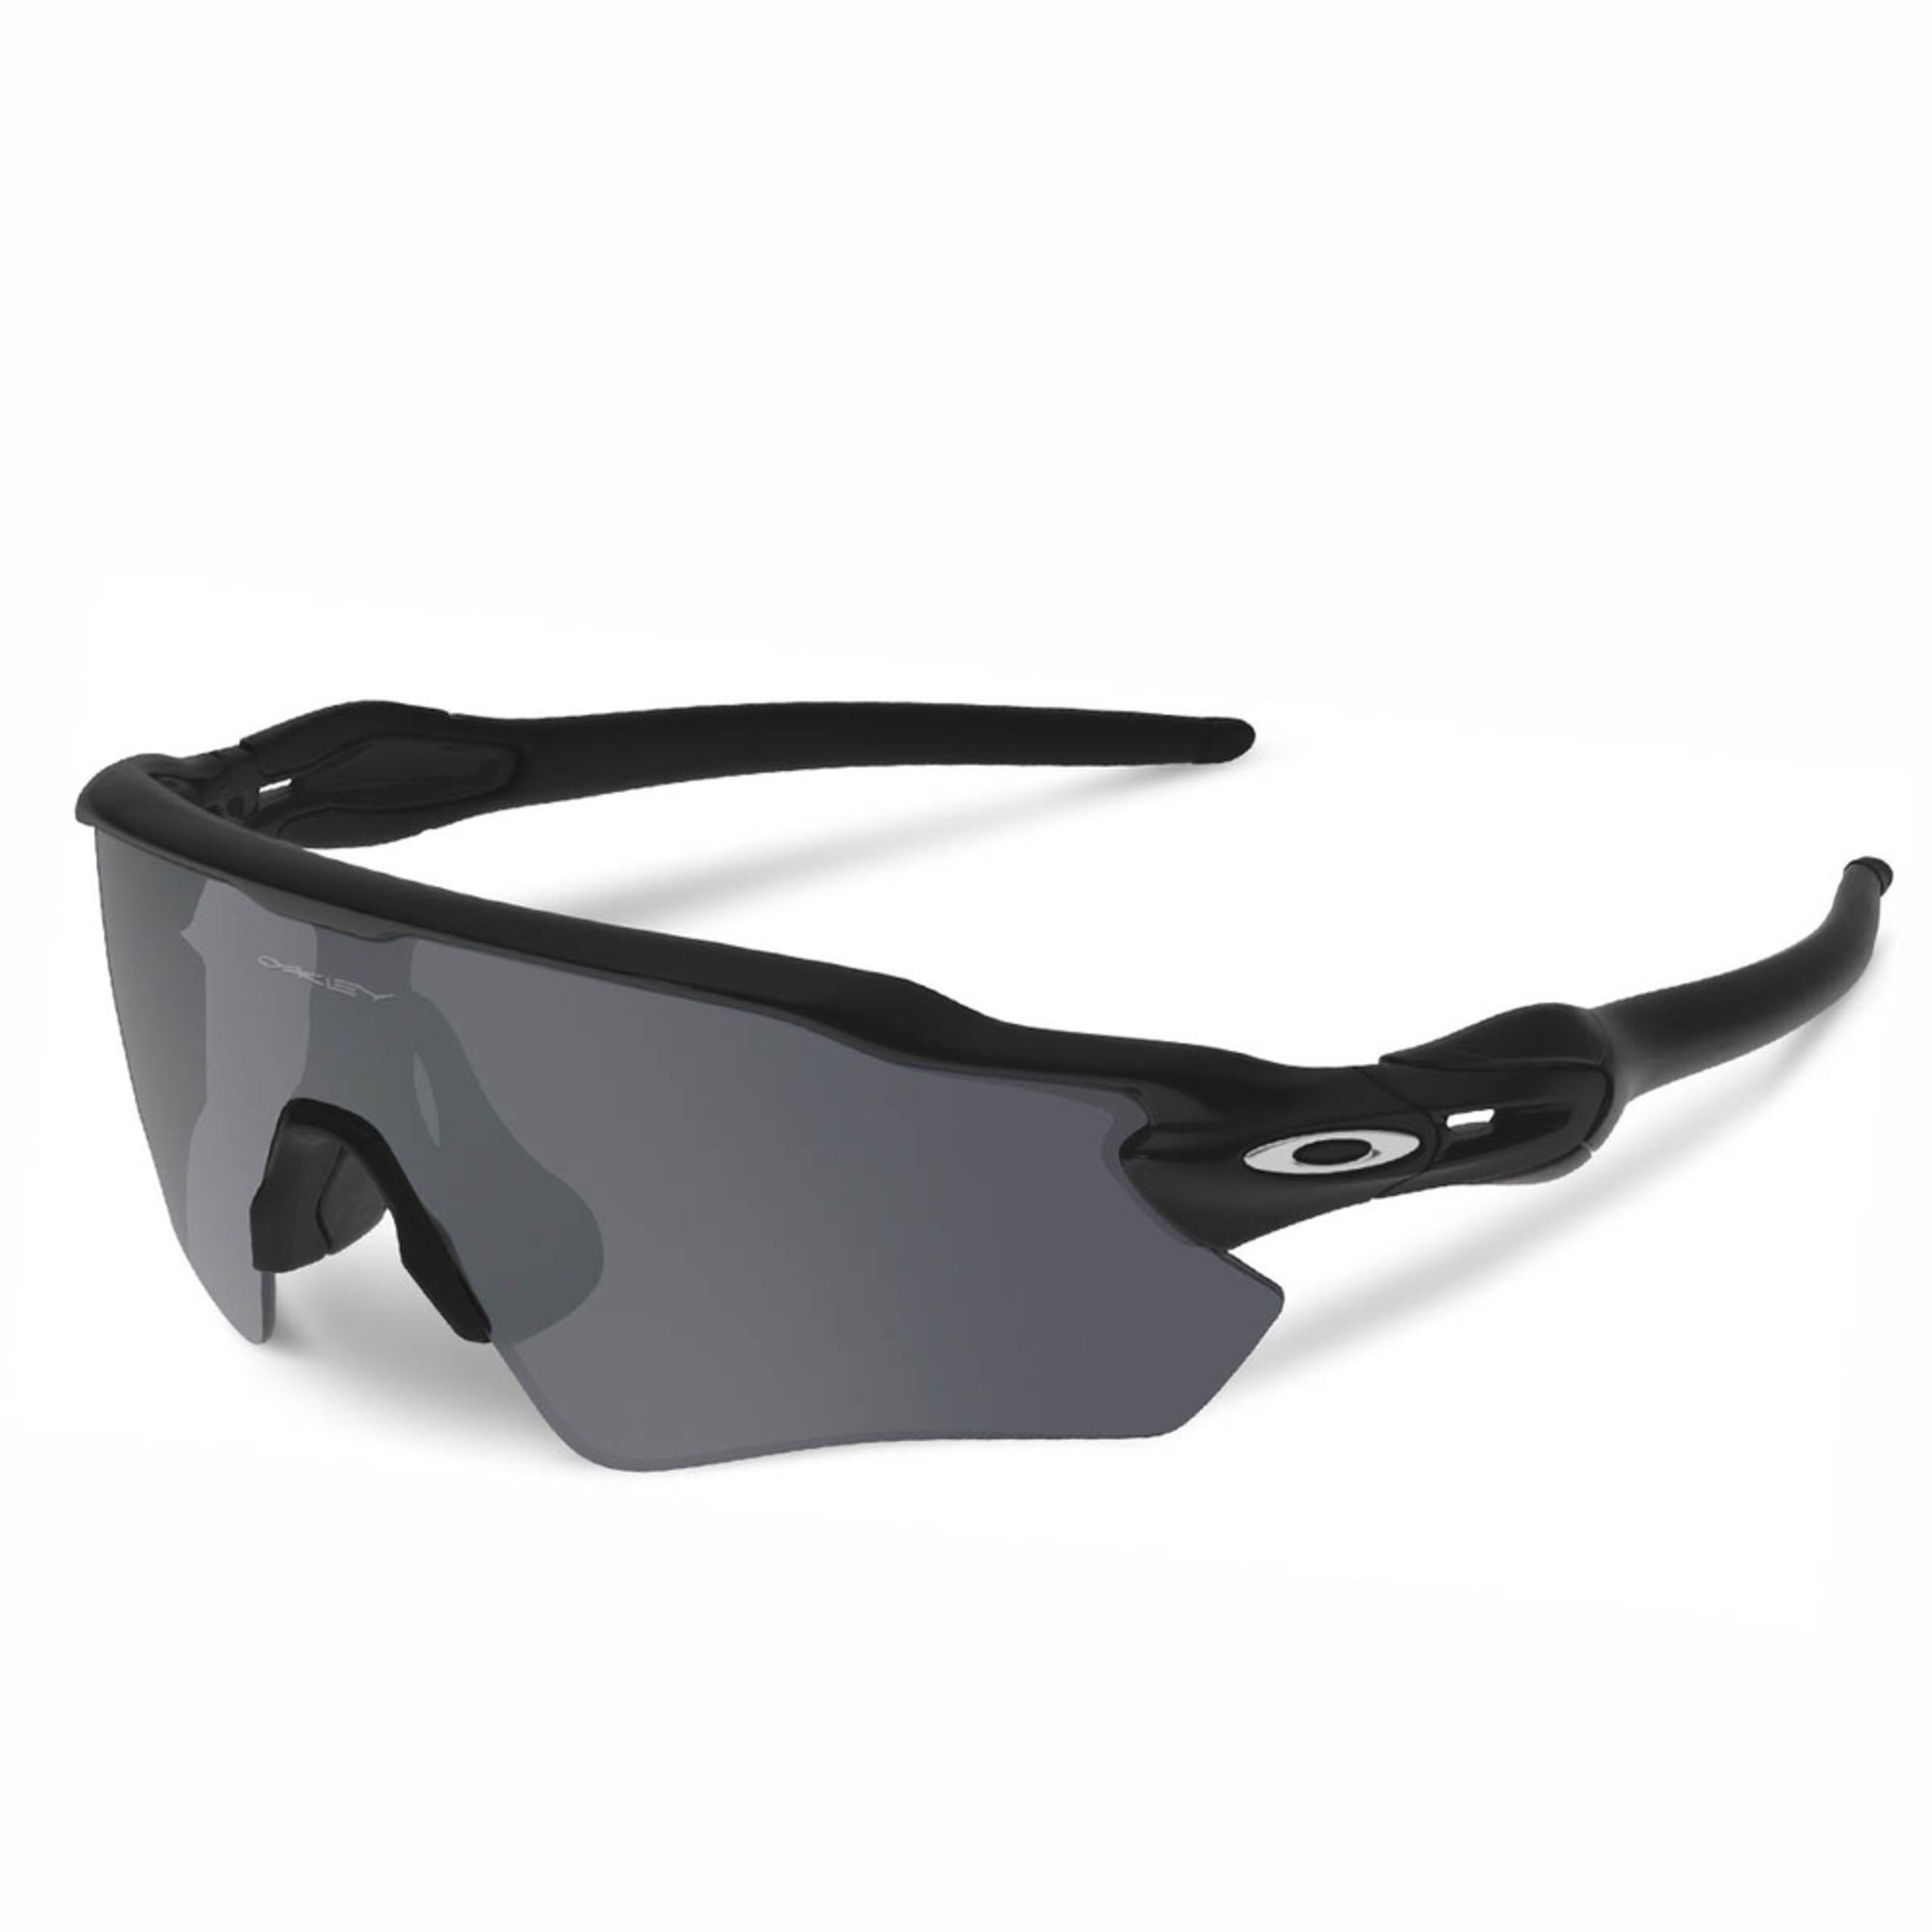 a0dc52e94f7 Oakley. Oakley Men s Radar EV Path Sunglasses. Product Rating